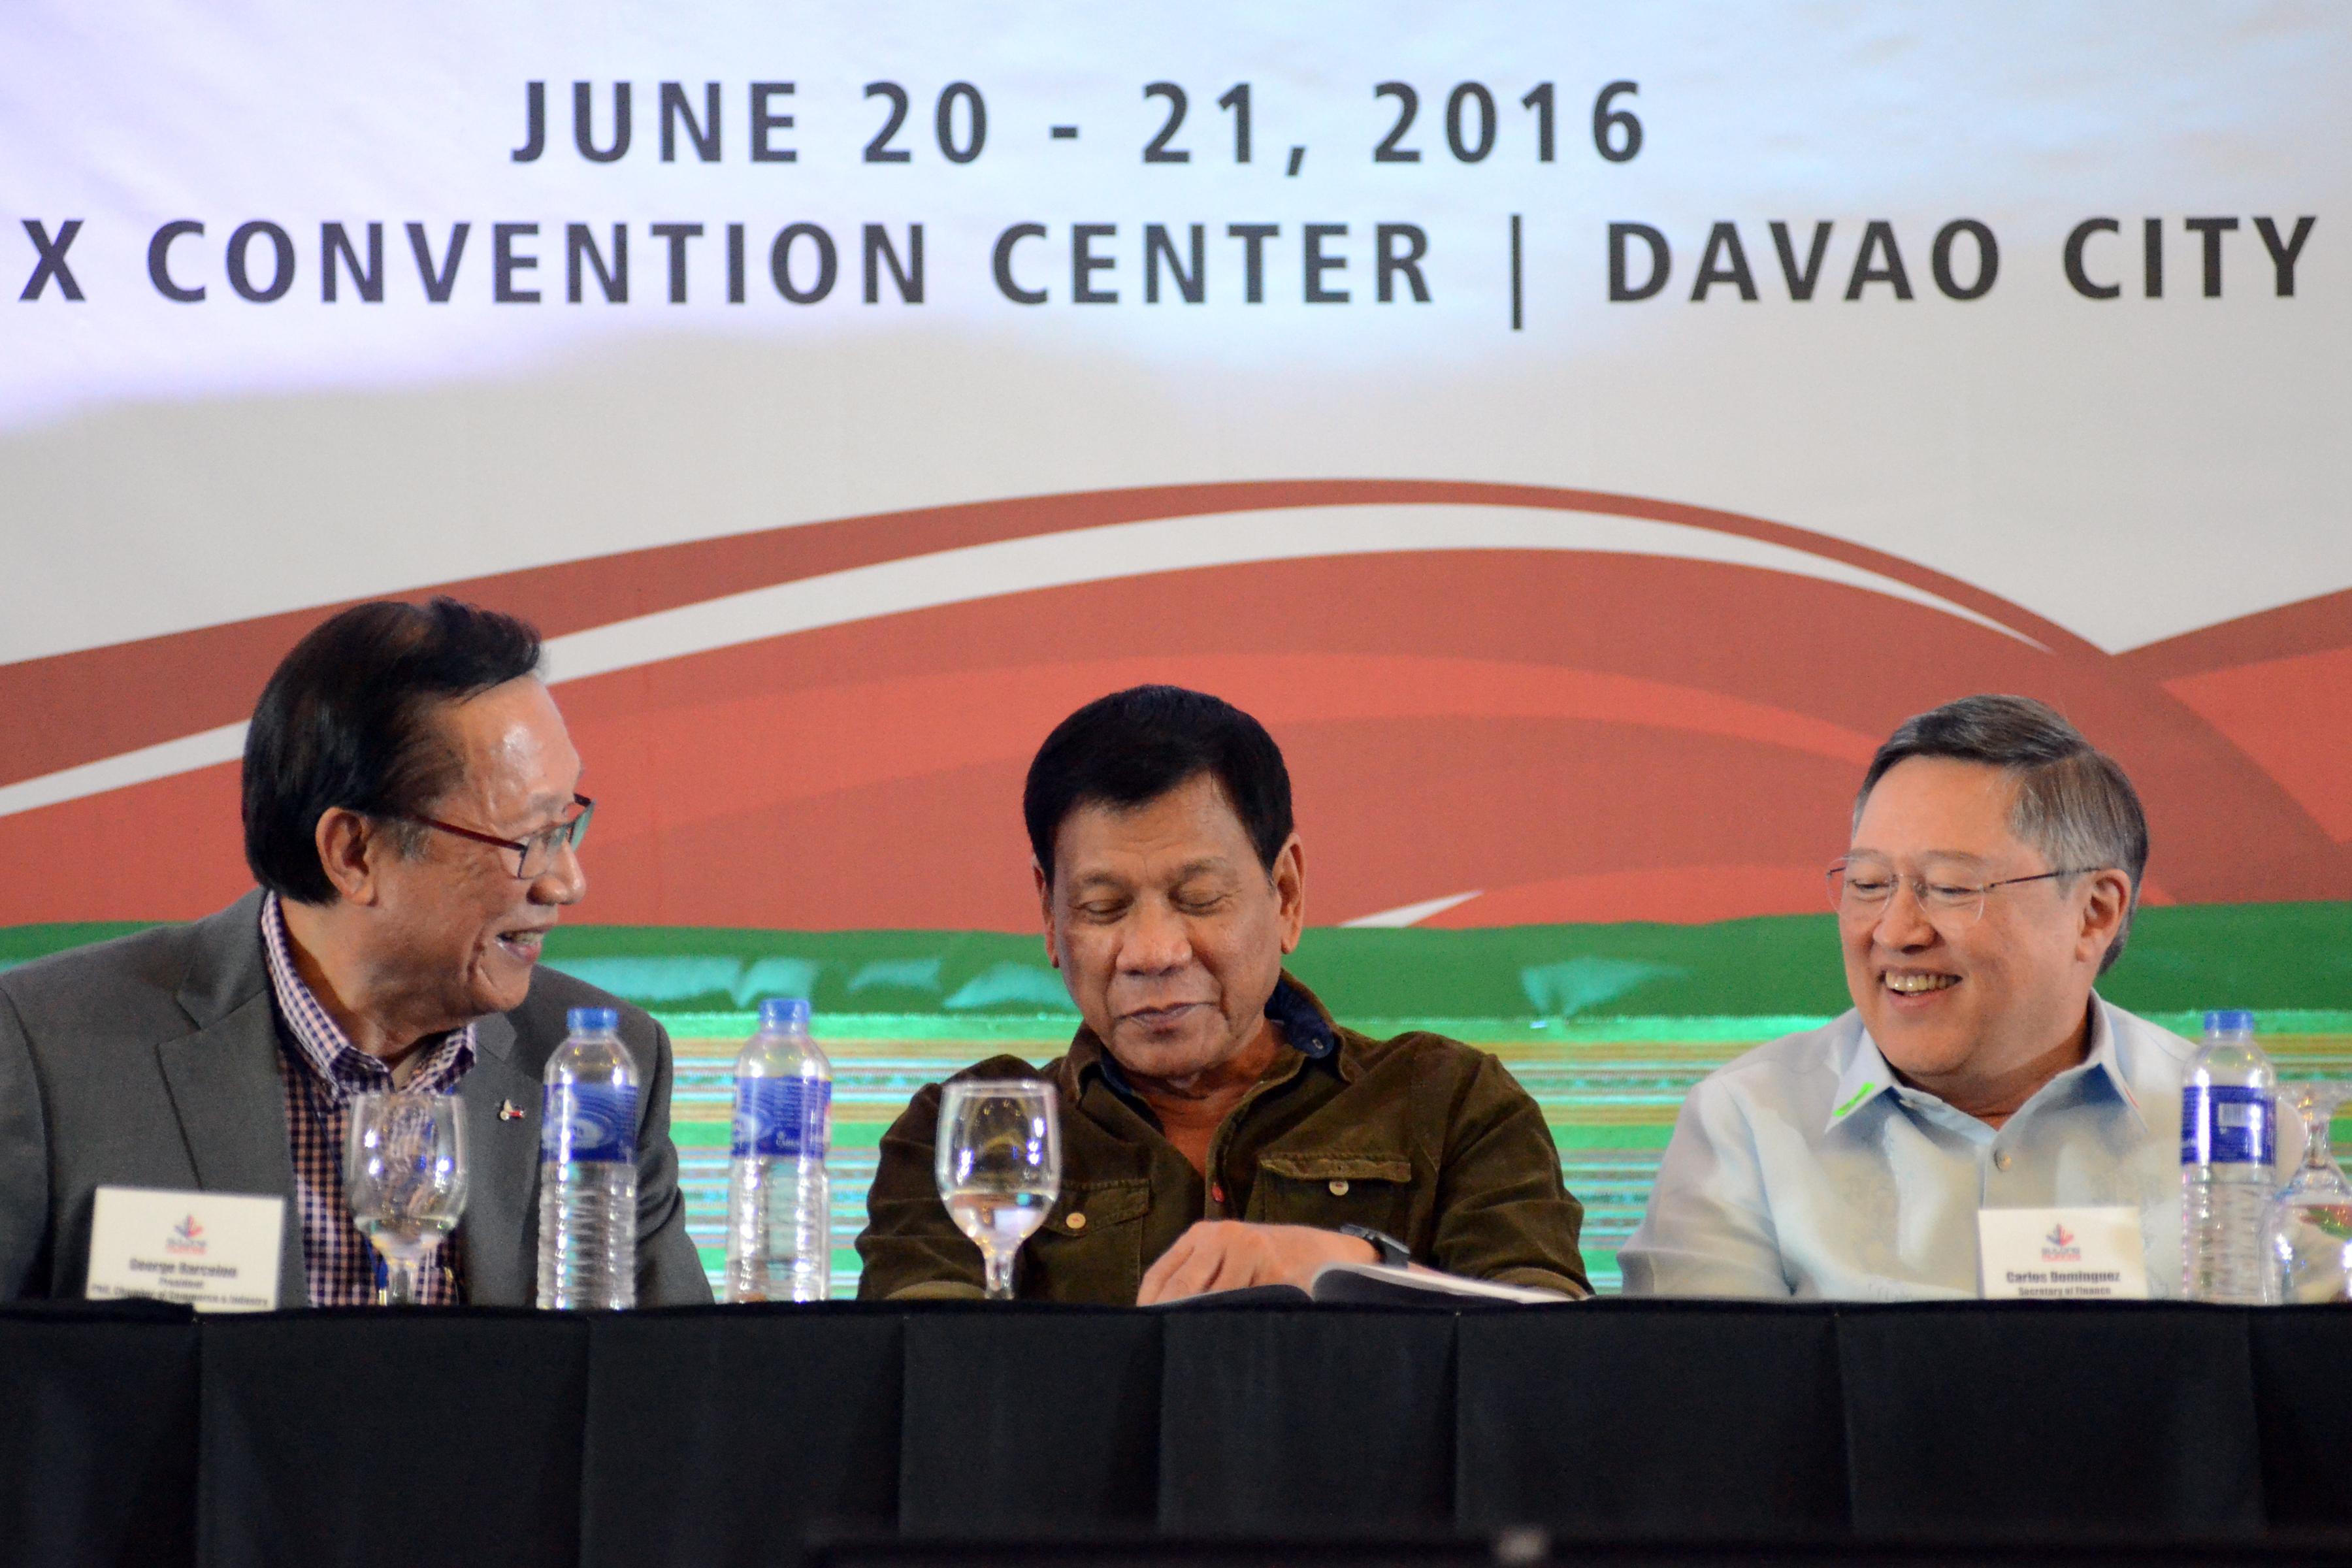 ADDRESSING TERRORISM. President-elect Rodrigo Duterte attends a business forum in Davao City on June 21, 2016. Photo from Sulong Pilipinas